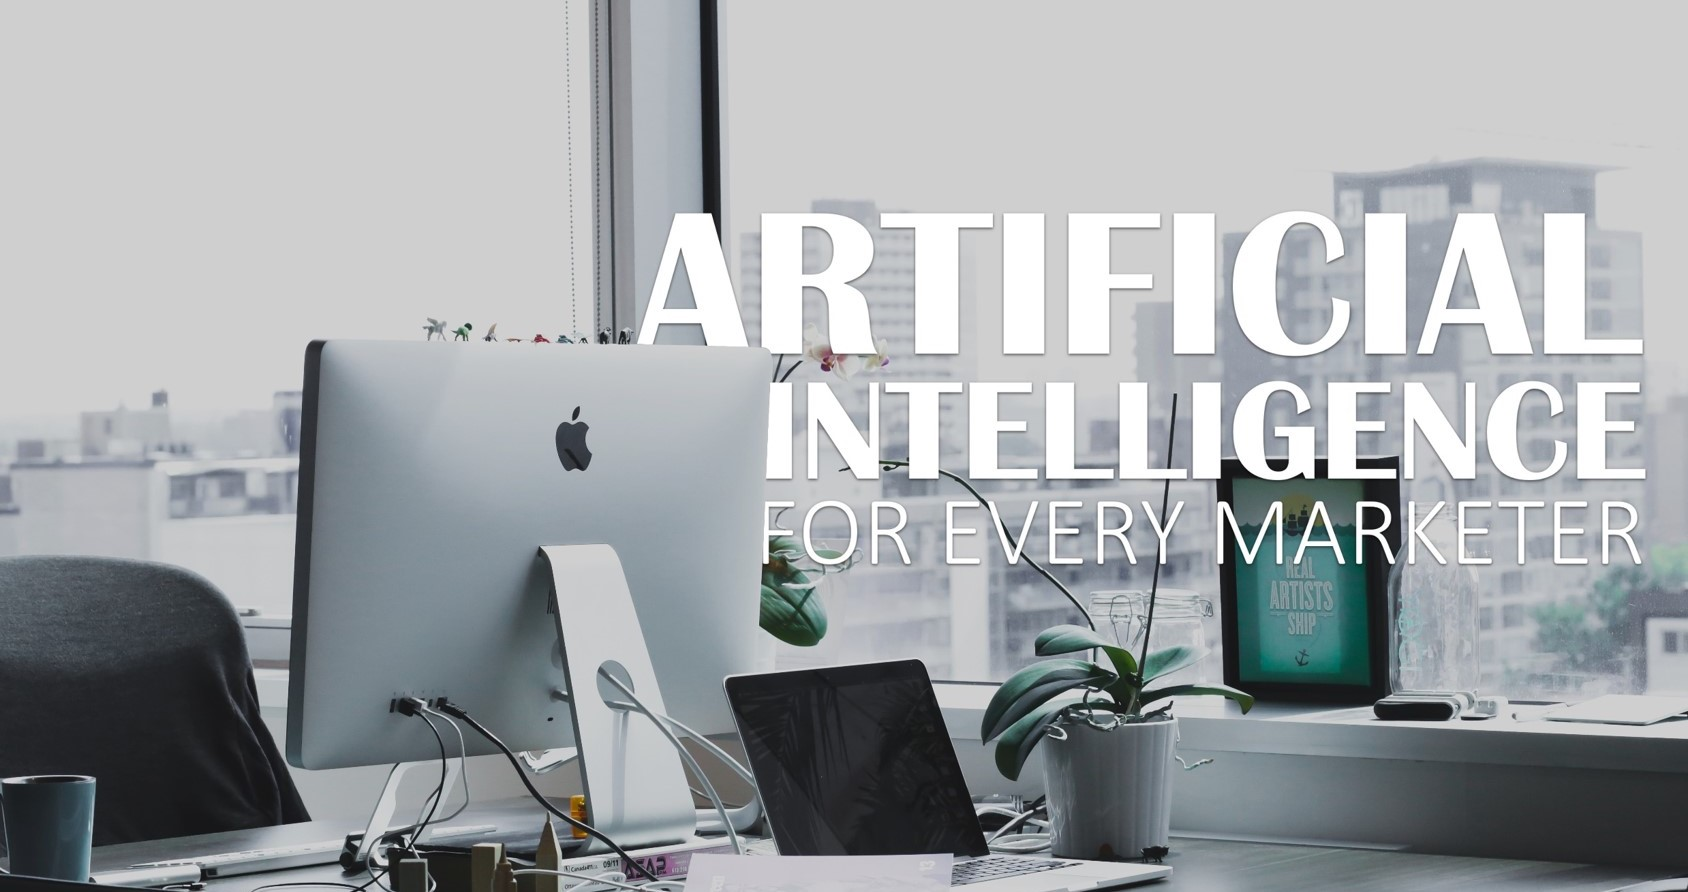 ai-marketing-martech-deeplearning-machinelearning-blog-sokrati-merkle-web